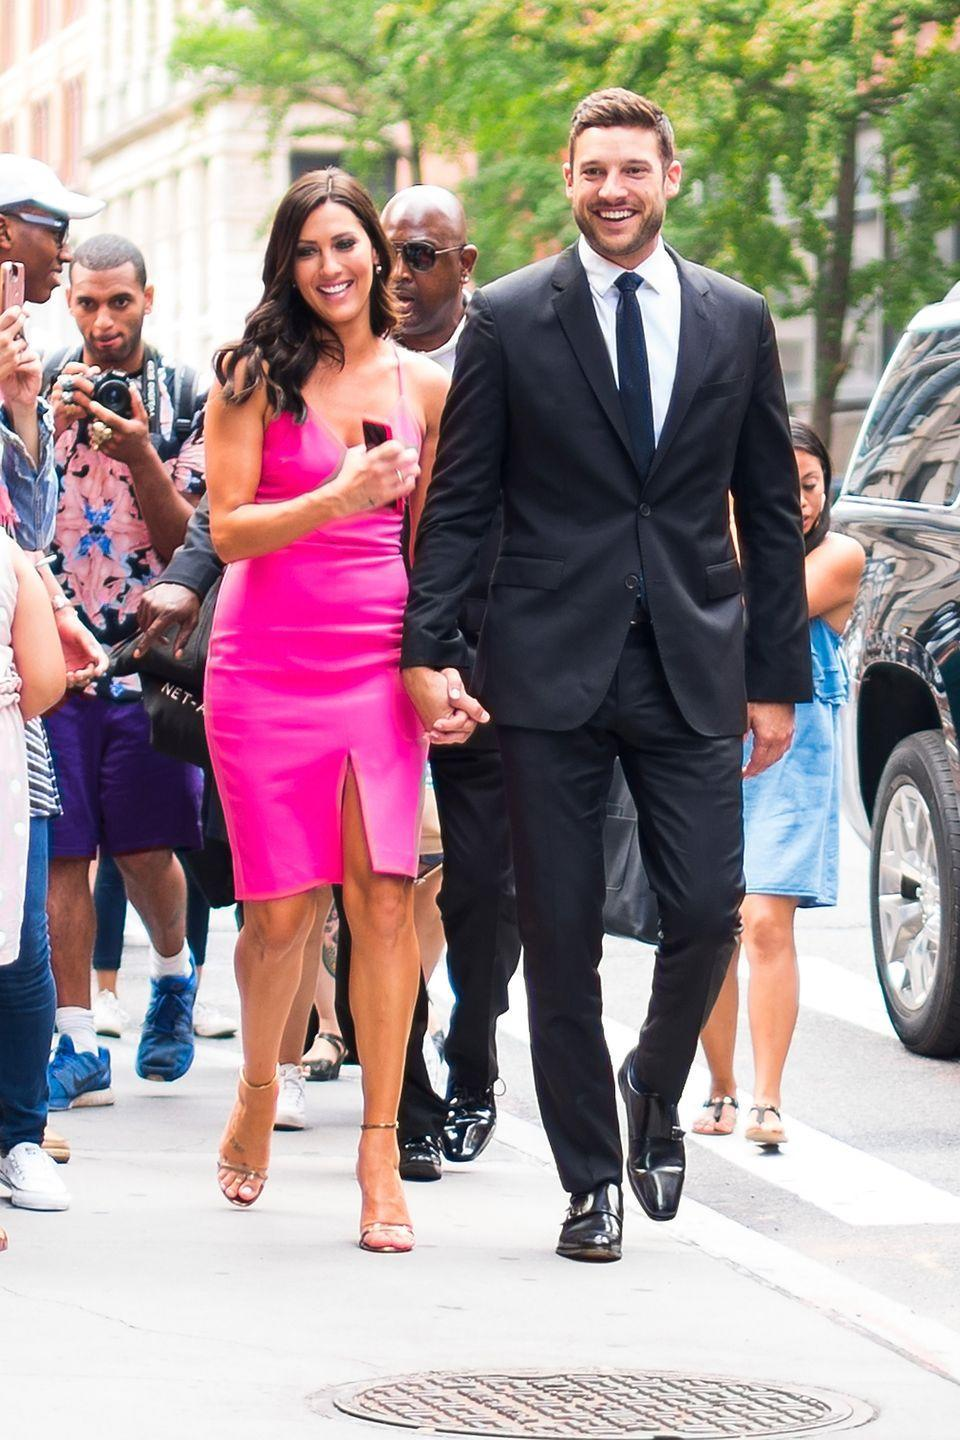 """<p>Becca Kufrin and Garrett Yrigoyen got engaged during Becca's season of <em>The Bachelorette </em>and seemed to be going strong for the two years they were engaged...that is, until <a href=""""https://www.cosmopolitan.com/entertainment/tv/a32815915/becca-kufrin-disagrees-garrett-yrigoyen-police-force-instagram/"""" rel=""""nofollow noopener"""" target=""""_blank"""" data-ylk=""""slk:Garrett made a hefty pro-police statement to his Instagram in light of the George Floyd protests"""" class=""""link rapid-noclick-resp"""">Garrett made a hefty pro-police statement to his Instagram in light of the George Floyd protests </a>back in June. Becca called his post """"tone deaf"""" and said she didn't """"align"""" with his values, and nearly three months after his comments, she confirmed their split on <em>The Bachelor Happy Hour </em>podcast. """"Garrett and I have decided to end our engagement,"""" she said.""""It wasn't based solely off of one Instagram post or somebody else's opinions or comments.""""</p>"""